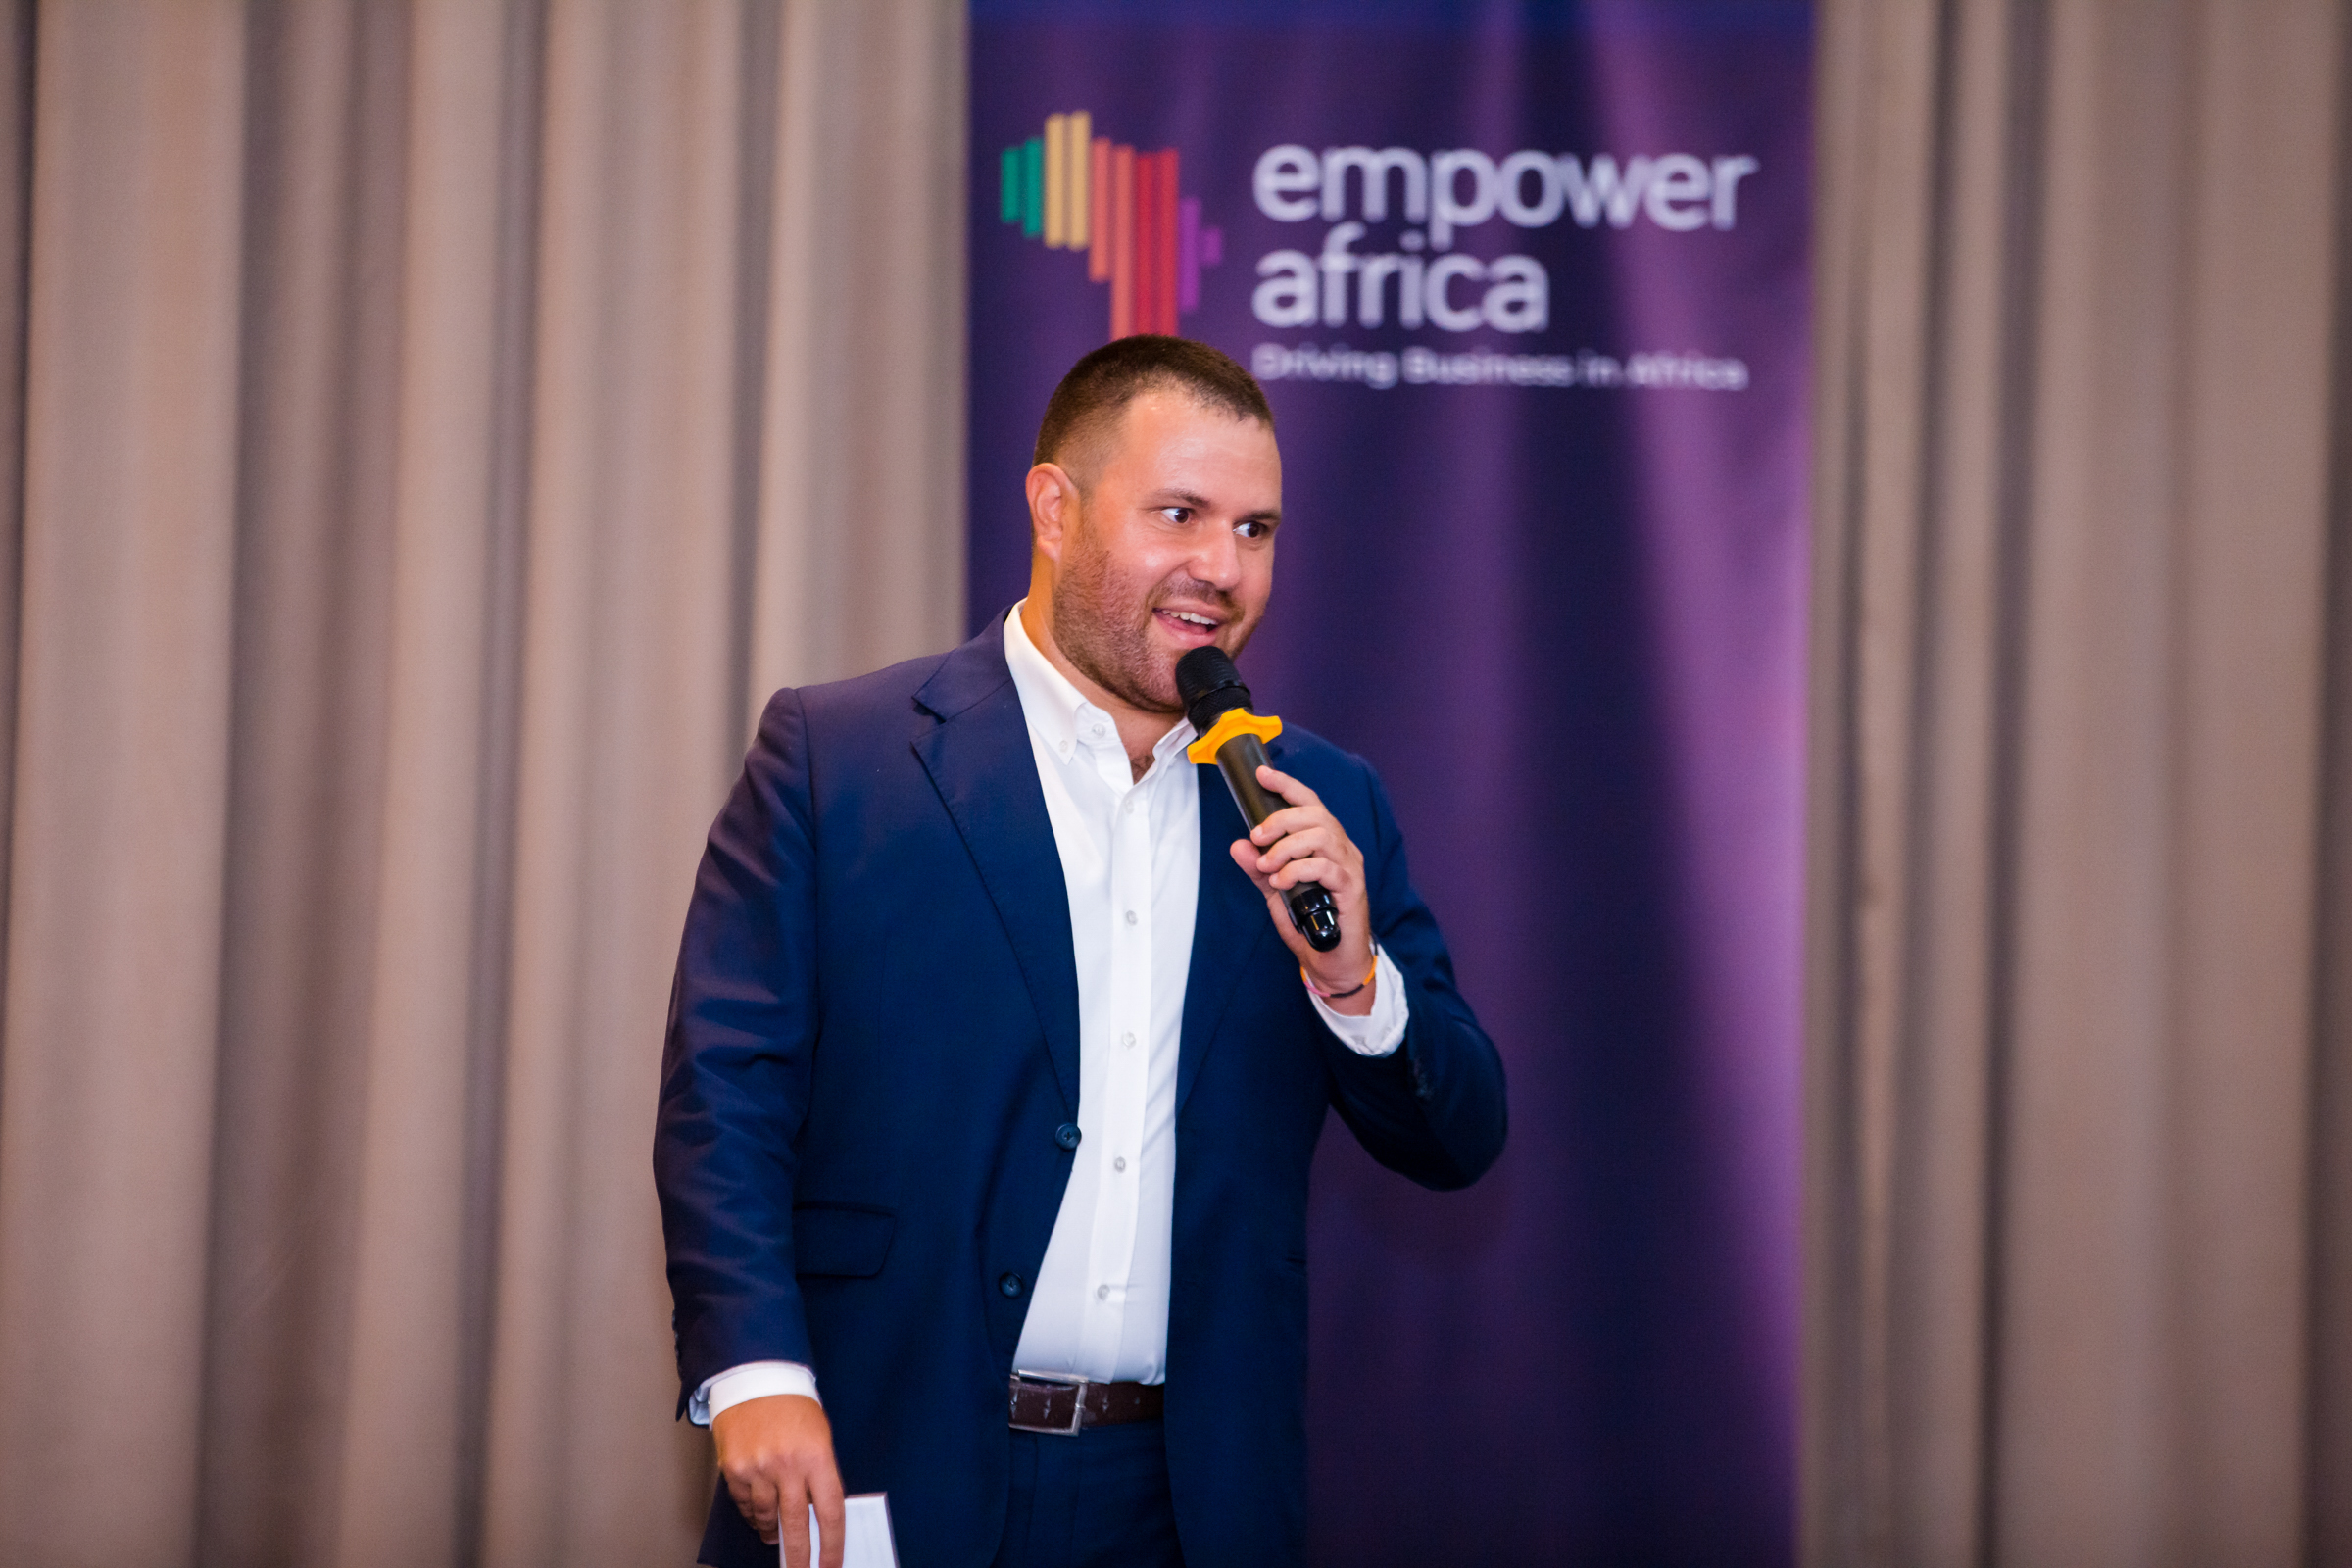 Driving Business in Africa Dinner in Kigali, Rwand